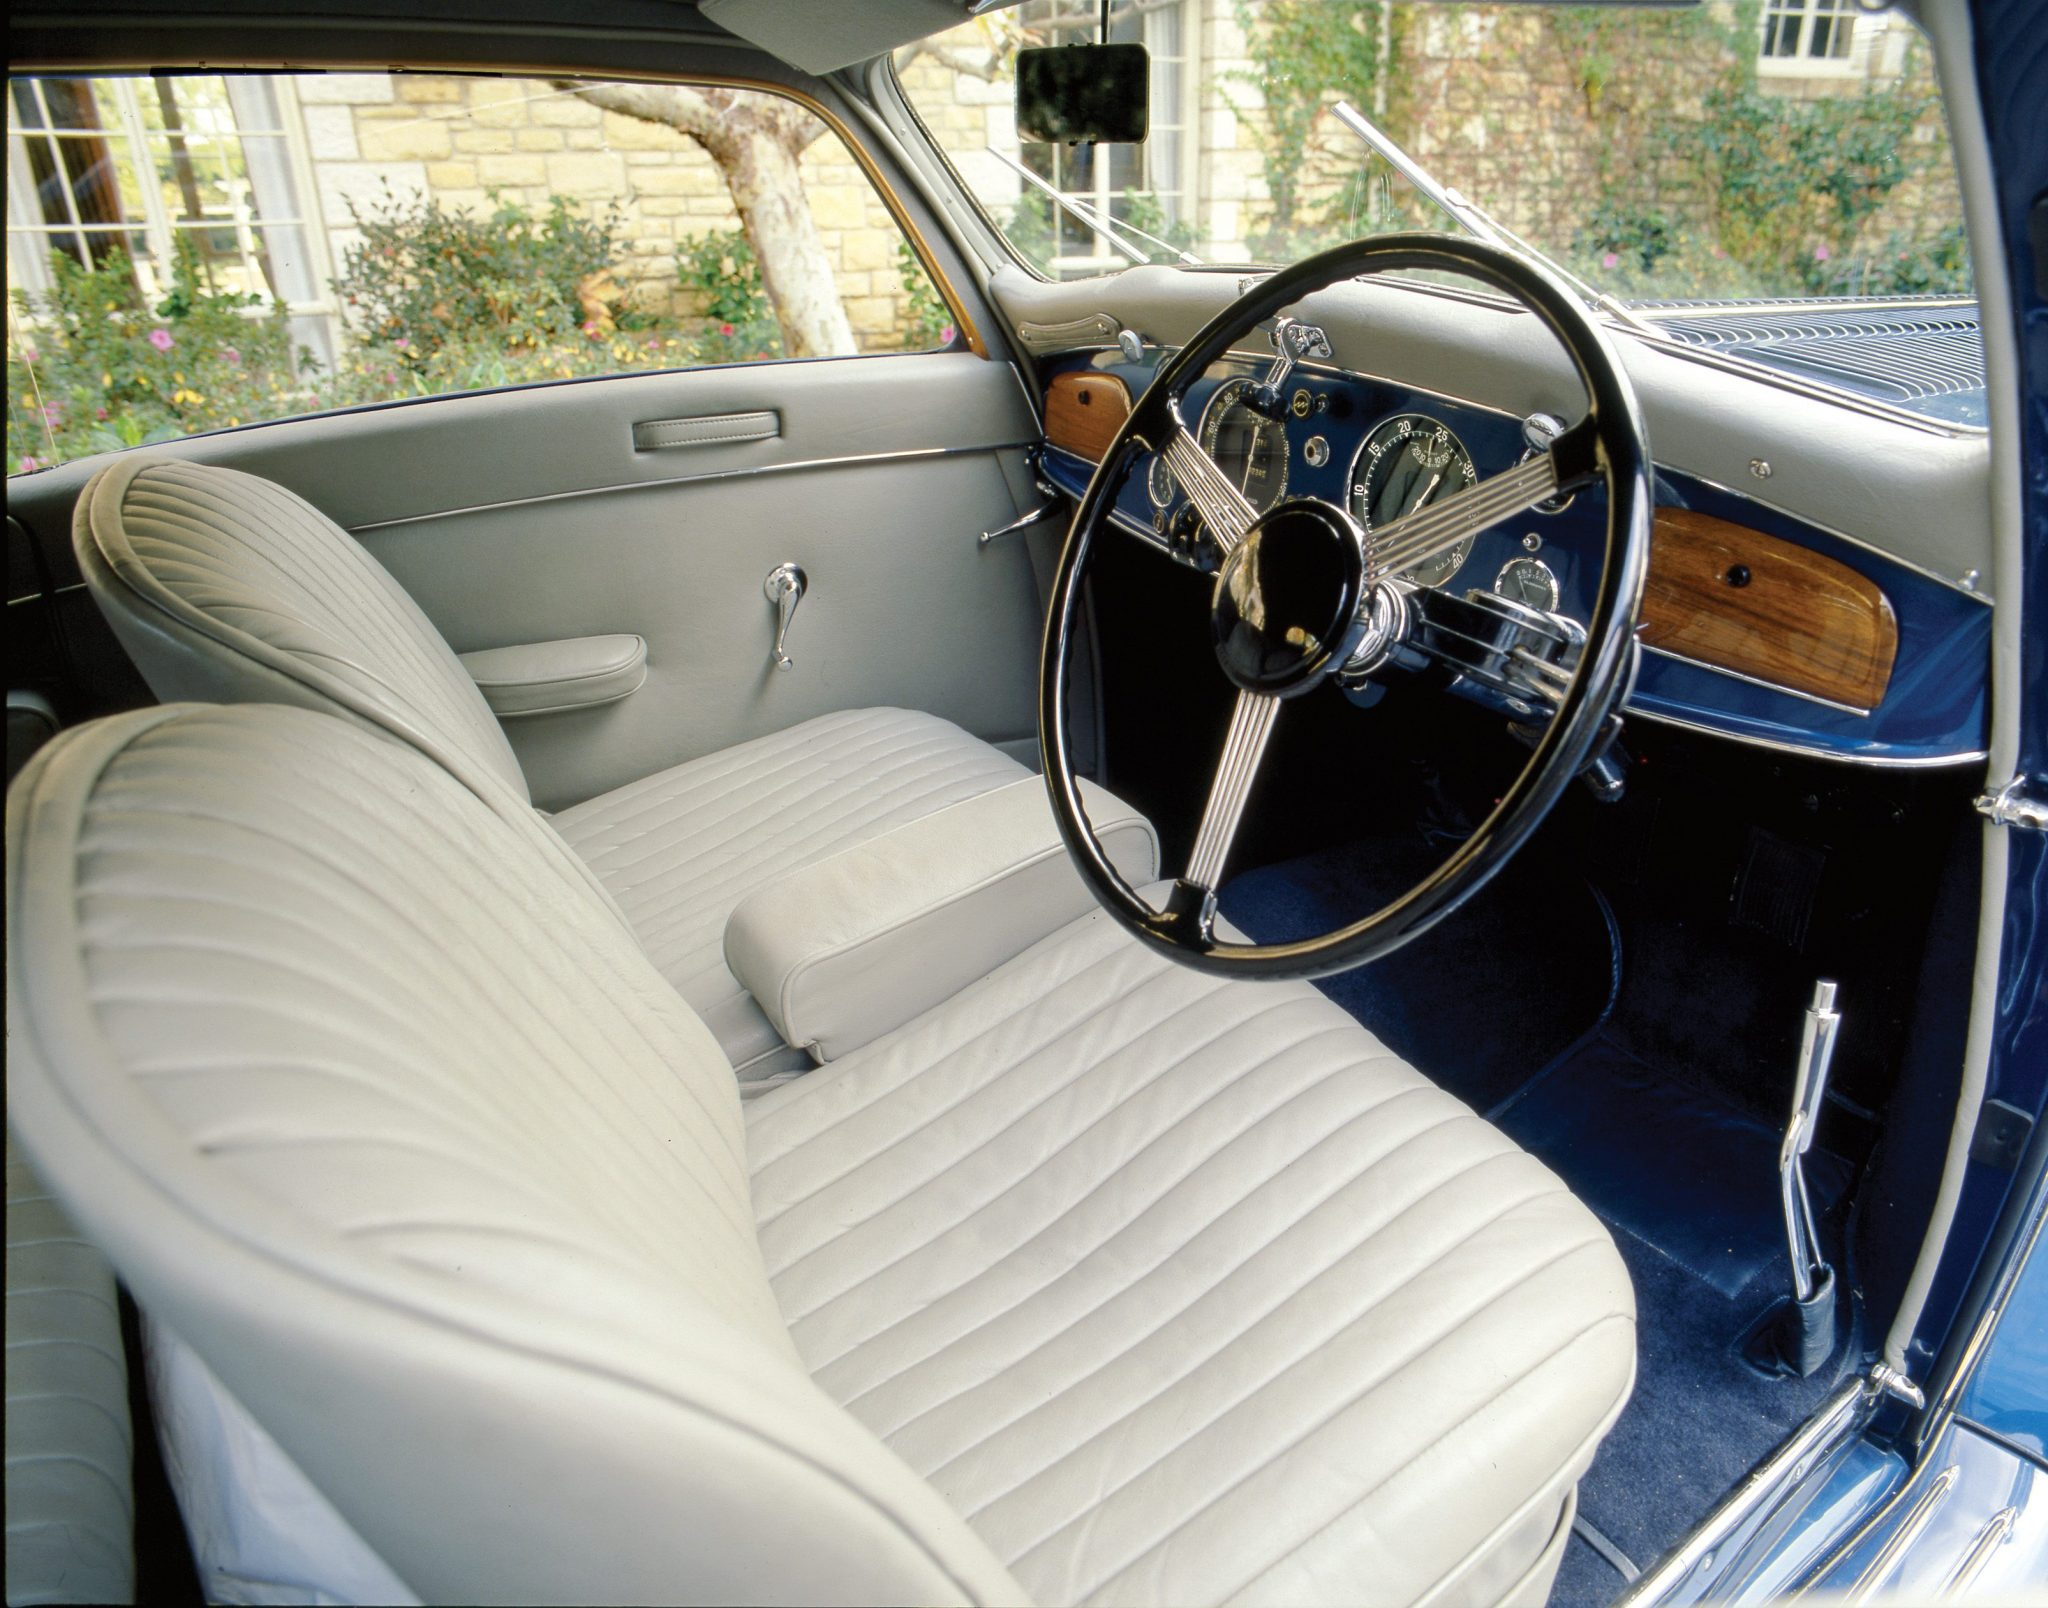 1938 Delage D8 120 Aerodynamic Coupe Interior